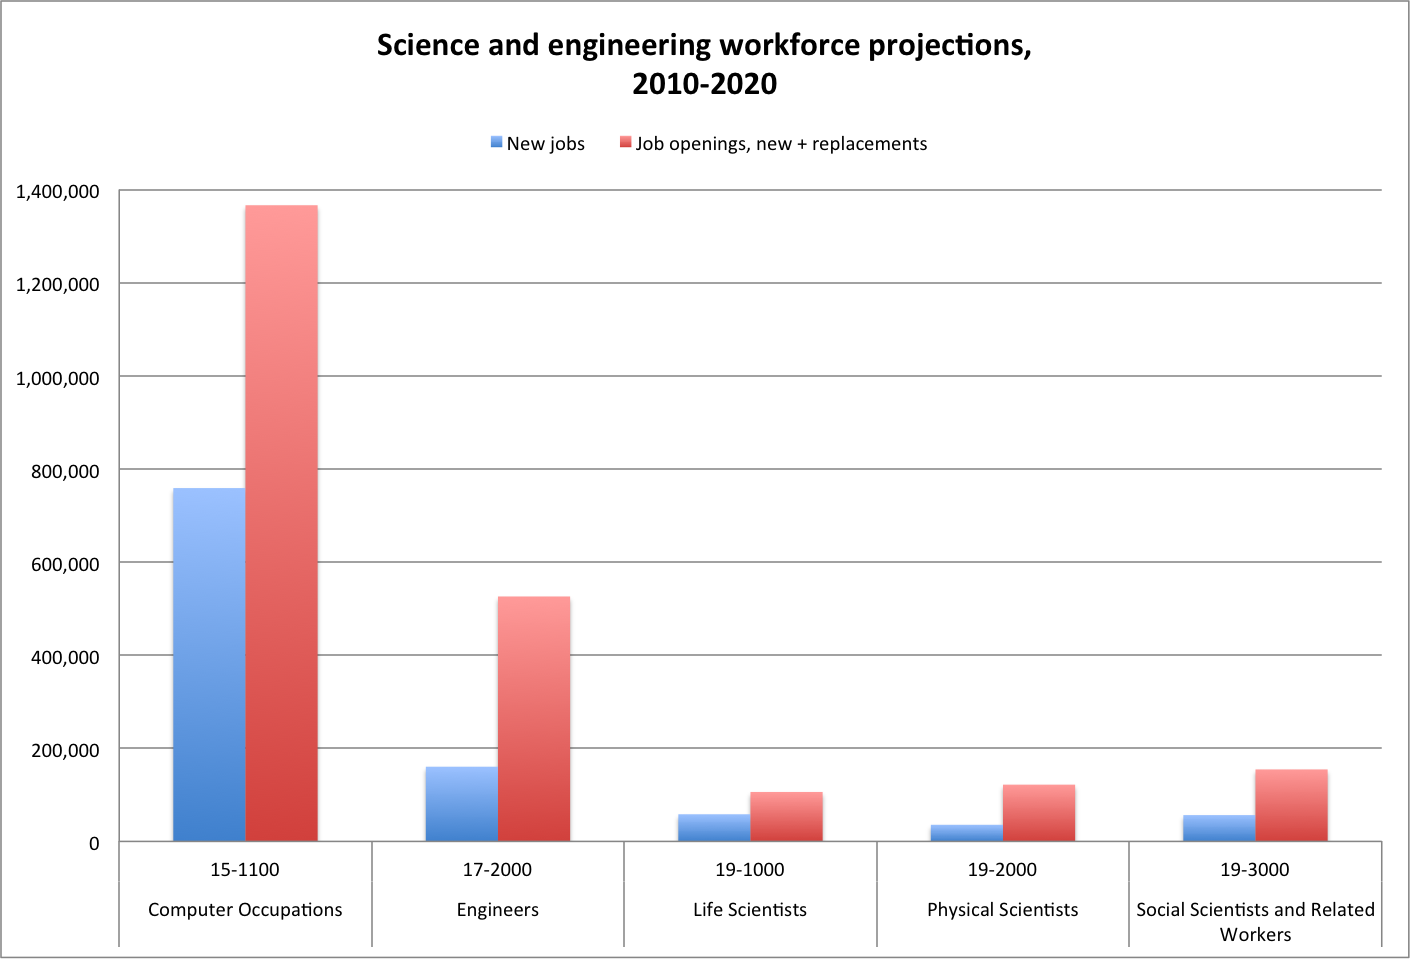 Science and engineering workforce projections, 2010-2020 [derived from http://www.bls.gov/opub/mlr/2012/01/art5full.pdf, Appendix, Table 1].